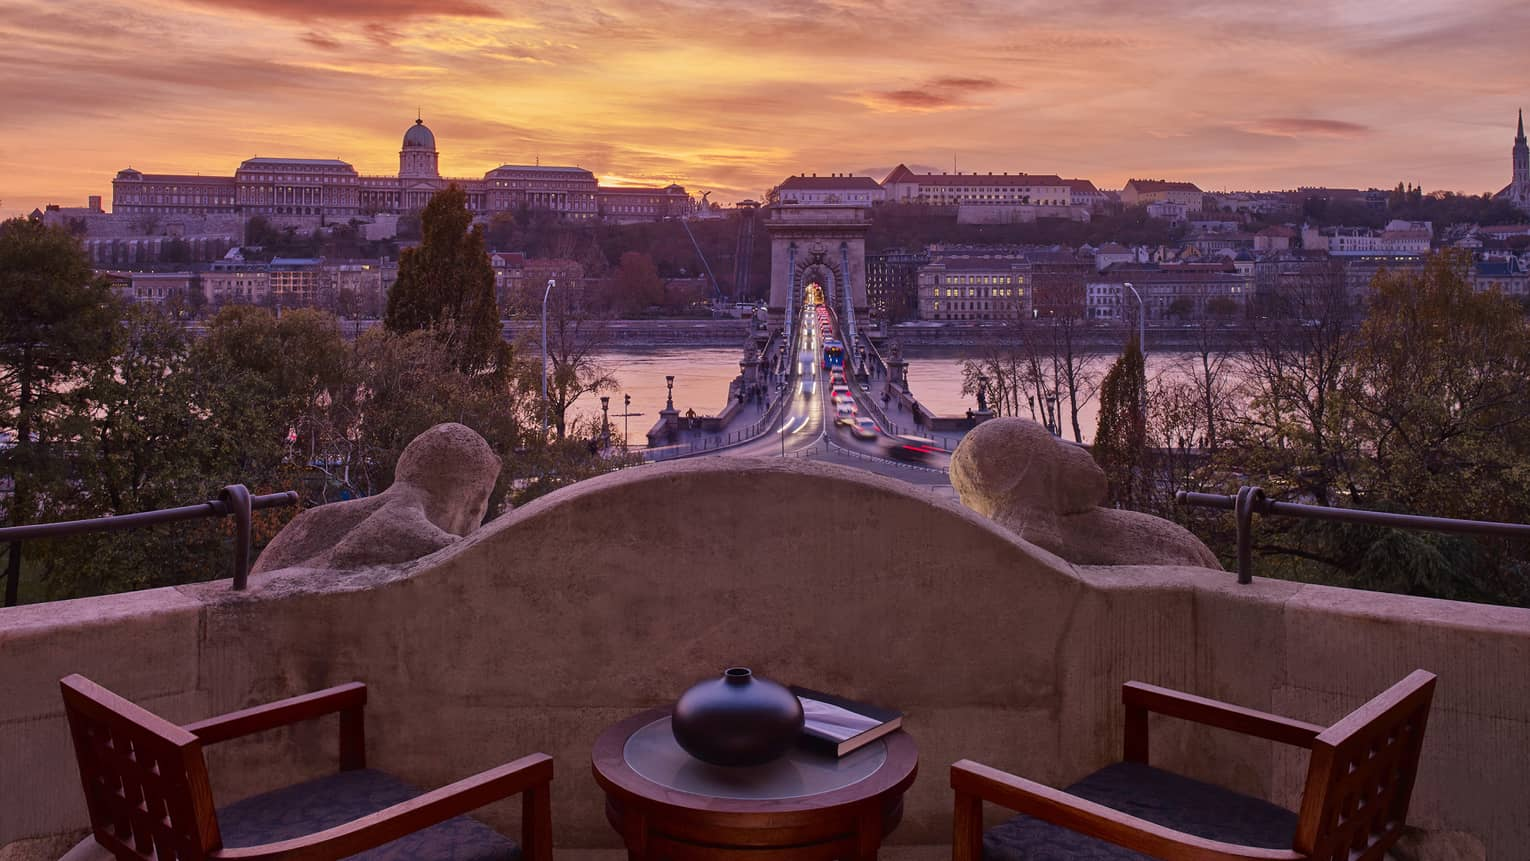 Royal Suite stone balcony with Danube River and Budapest view at sunset